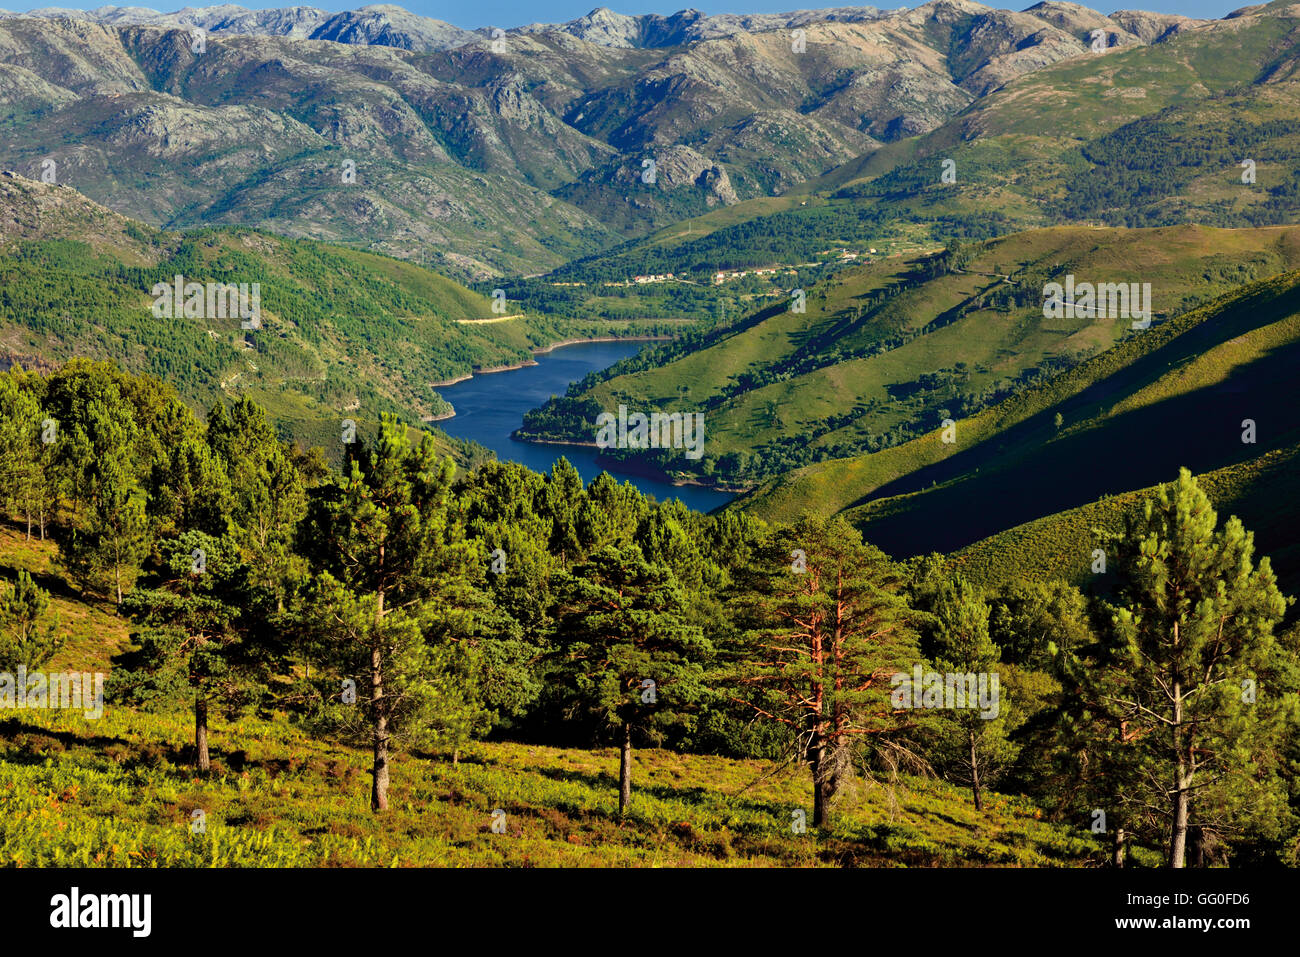 Portugal, Minho: Great mountain view in the National Park Peneda Geres - Stock Image